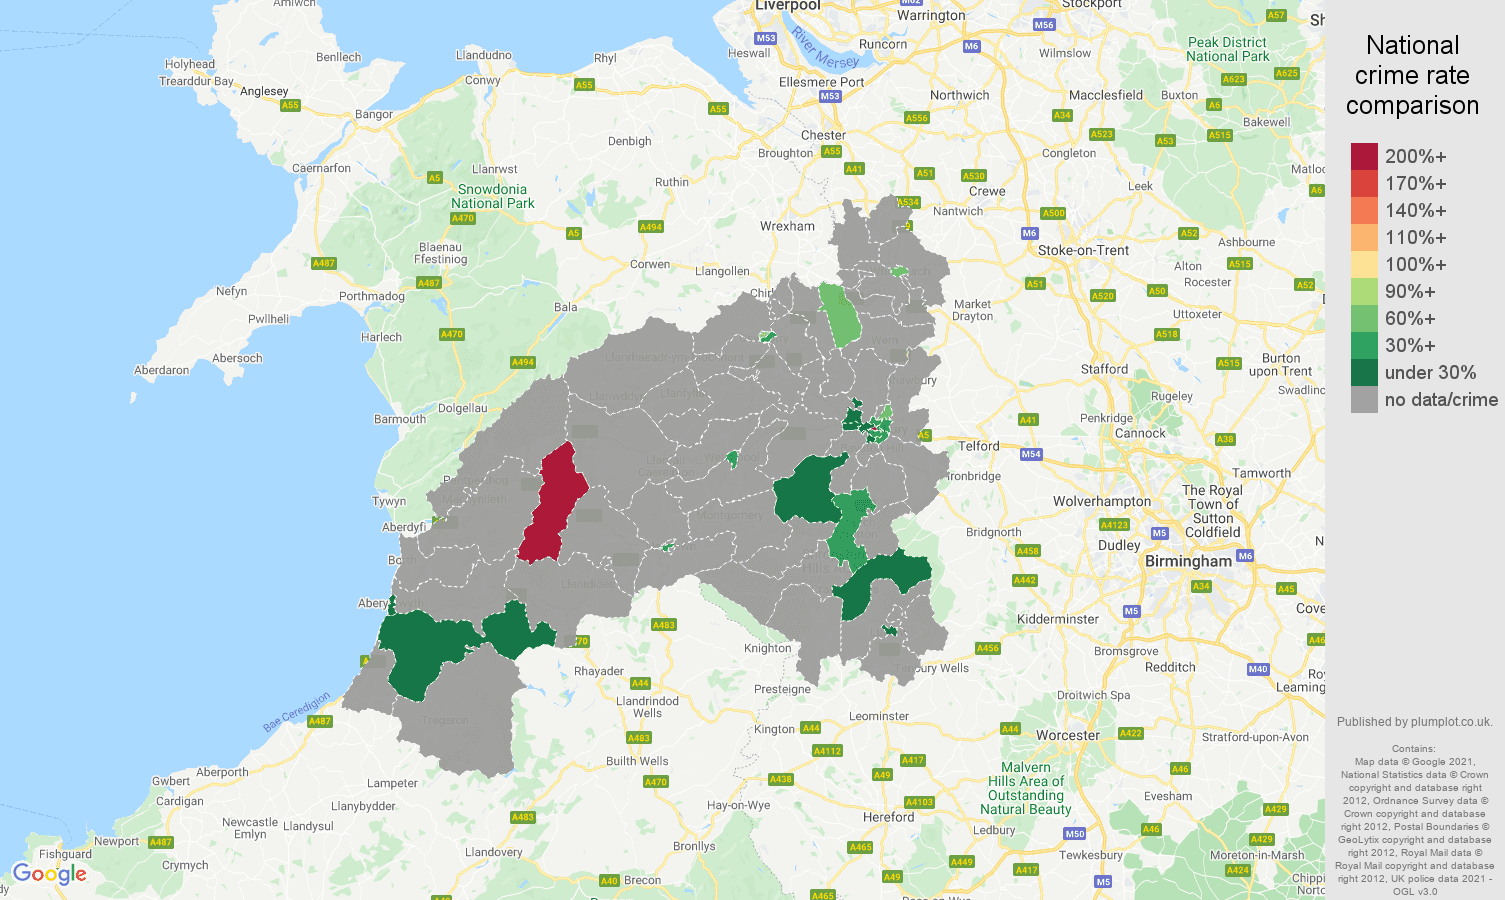 Shrewsbury theft from the person crime rate comparison map